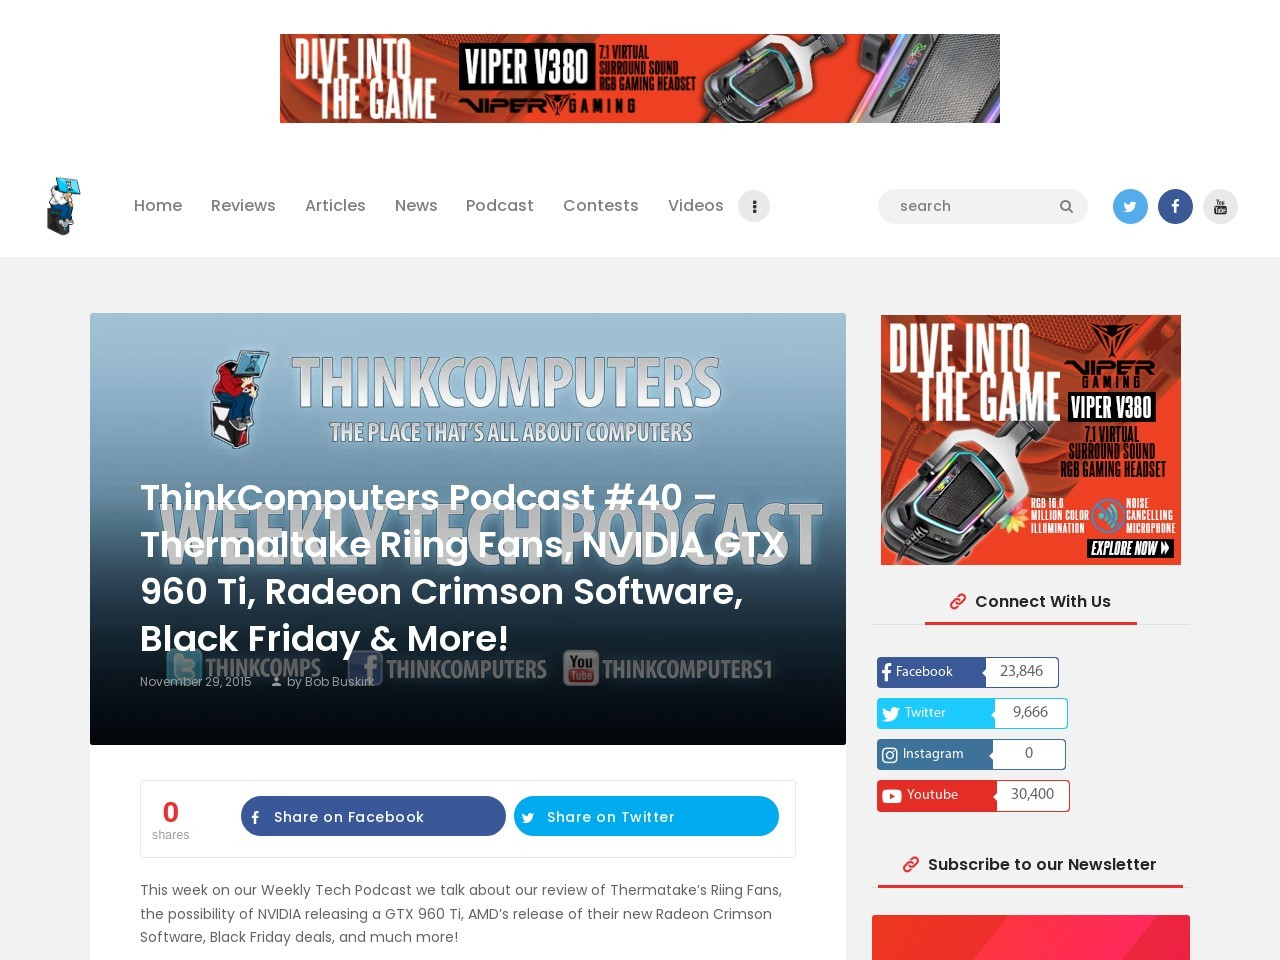 ThinkComputers Podcast #40 – Thermaltake Riing Fans …